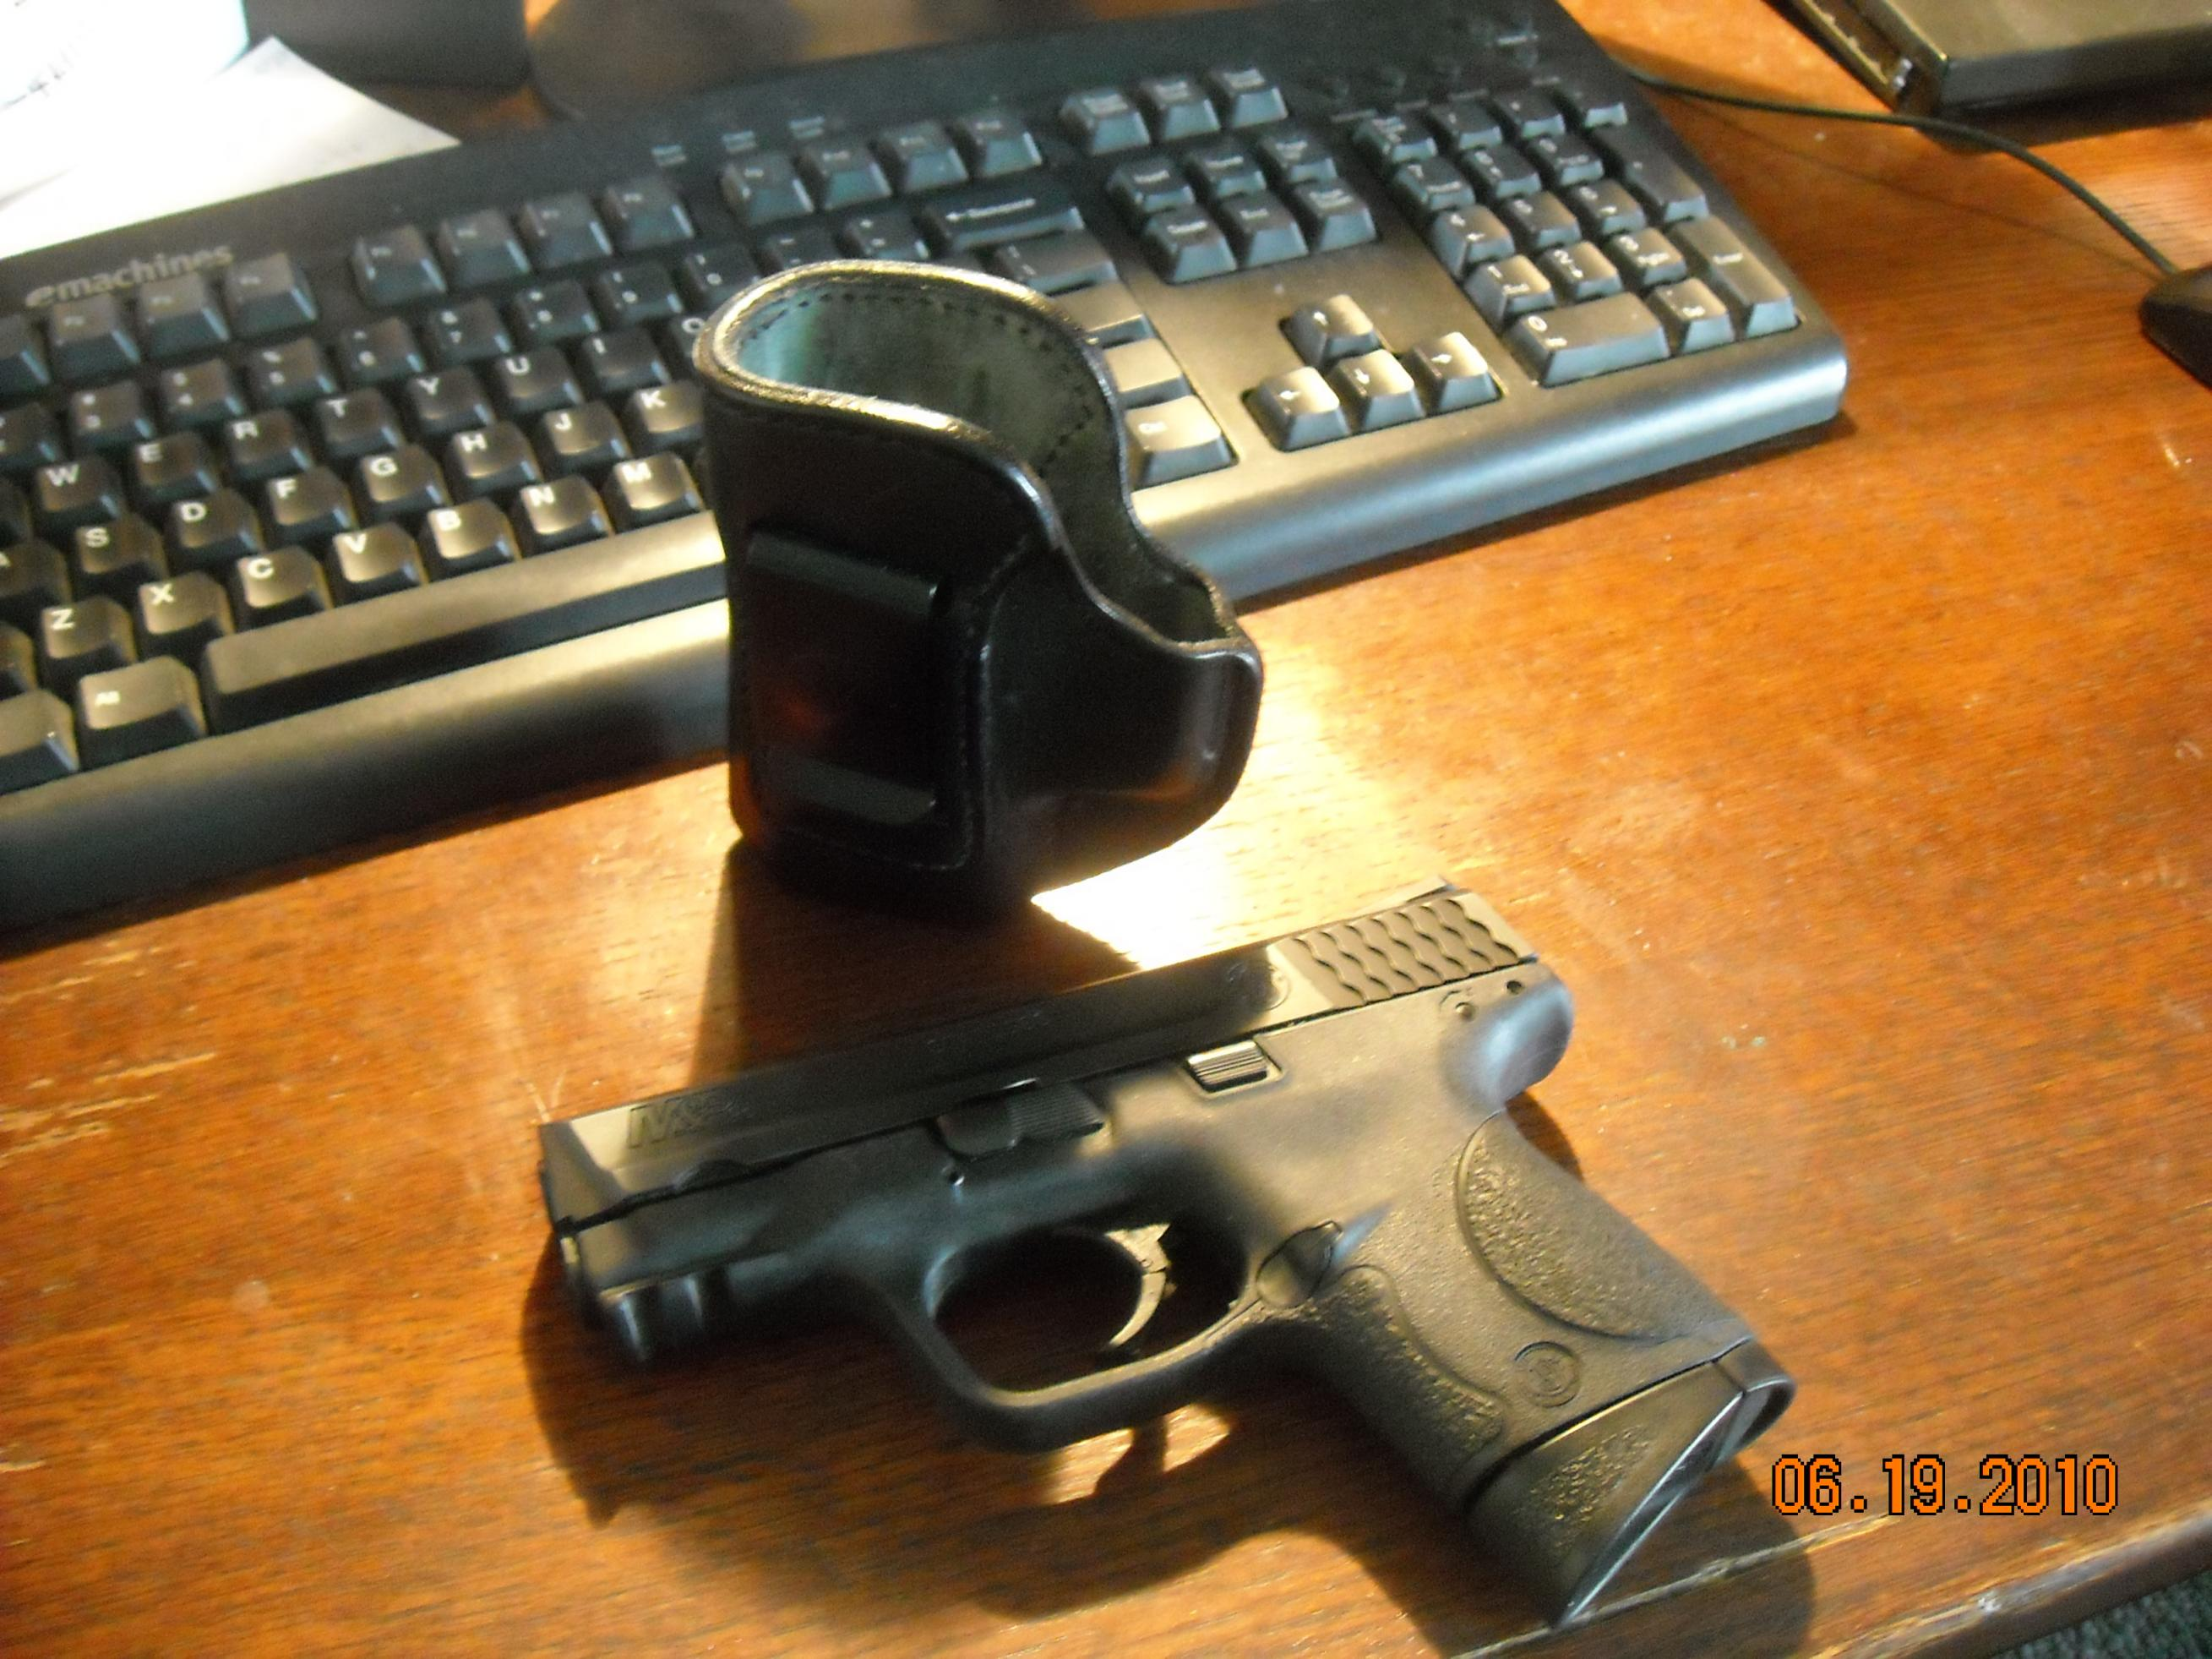 I joined the S&W family-dscn0894.jpg